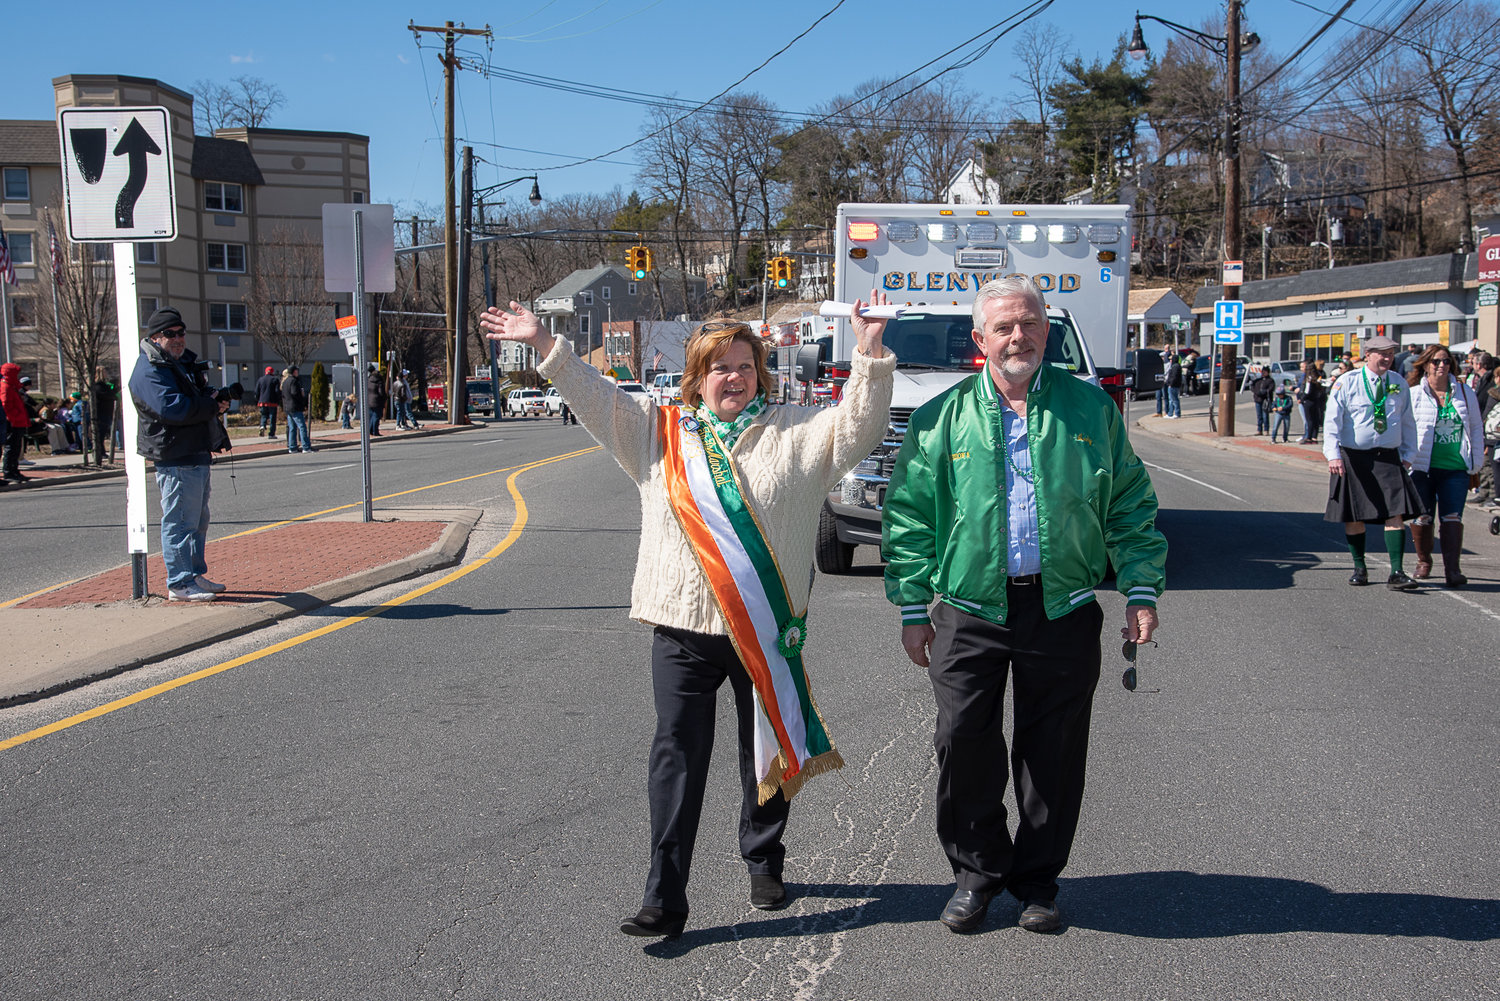 The two Hibernians most responsible for the parade were co-chairs Lisa Bartley Forgione and Andrew Stafford.